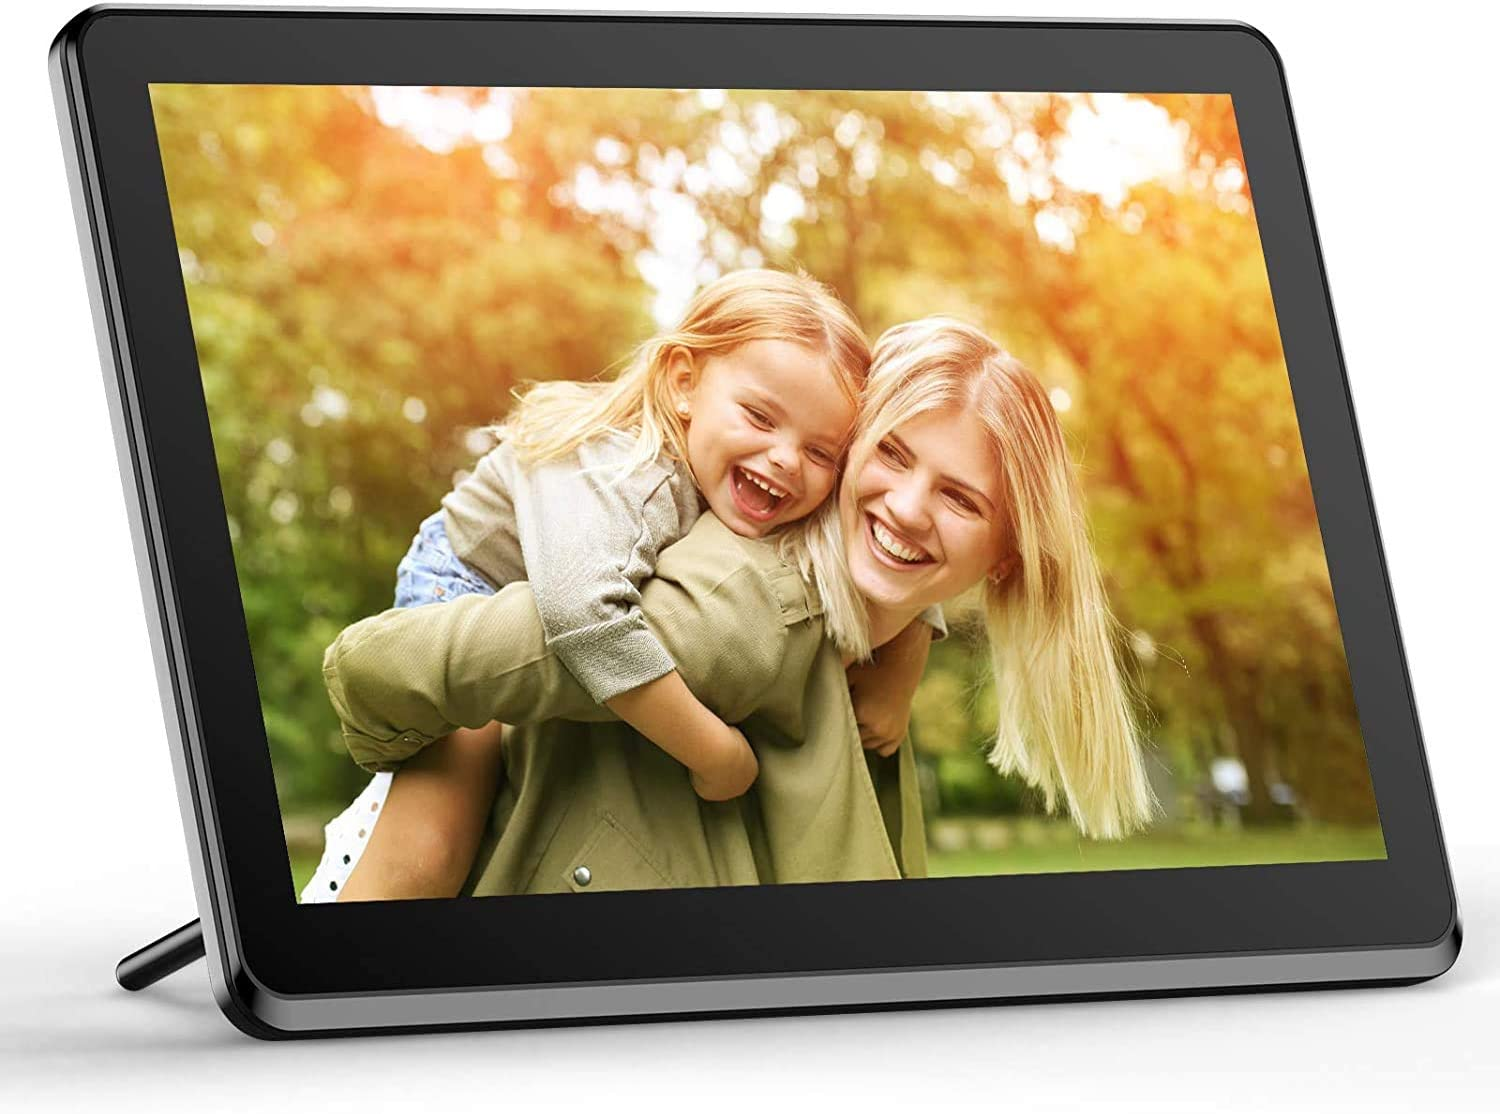 Digital Picture Frame WiFi 10 Inch Digital Photo Frame 1080P HD Display IPS Touch Screen, Share Photos and Videos via Free App, Email, Cloud, 8GB Storage, Auto-Rotate, Wall-Mountable